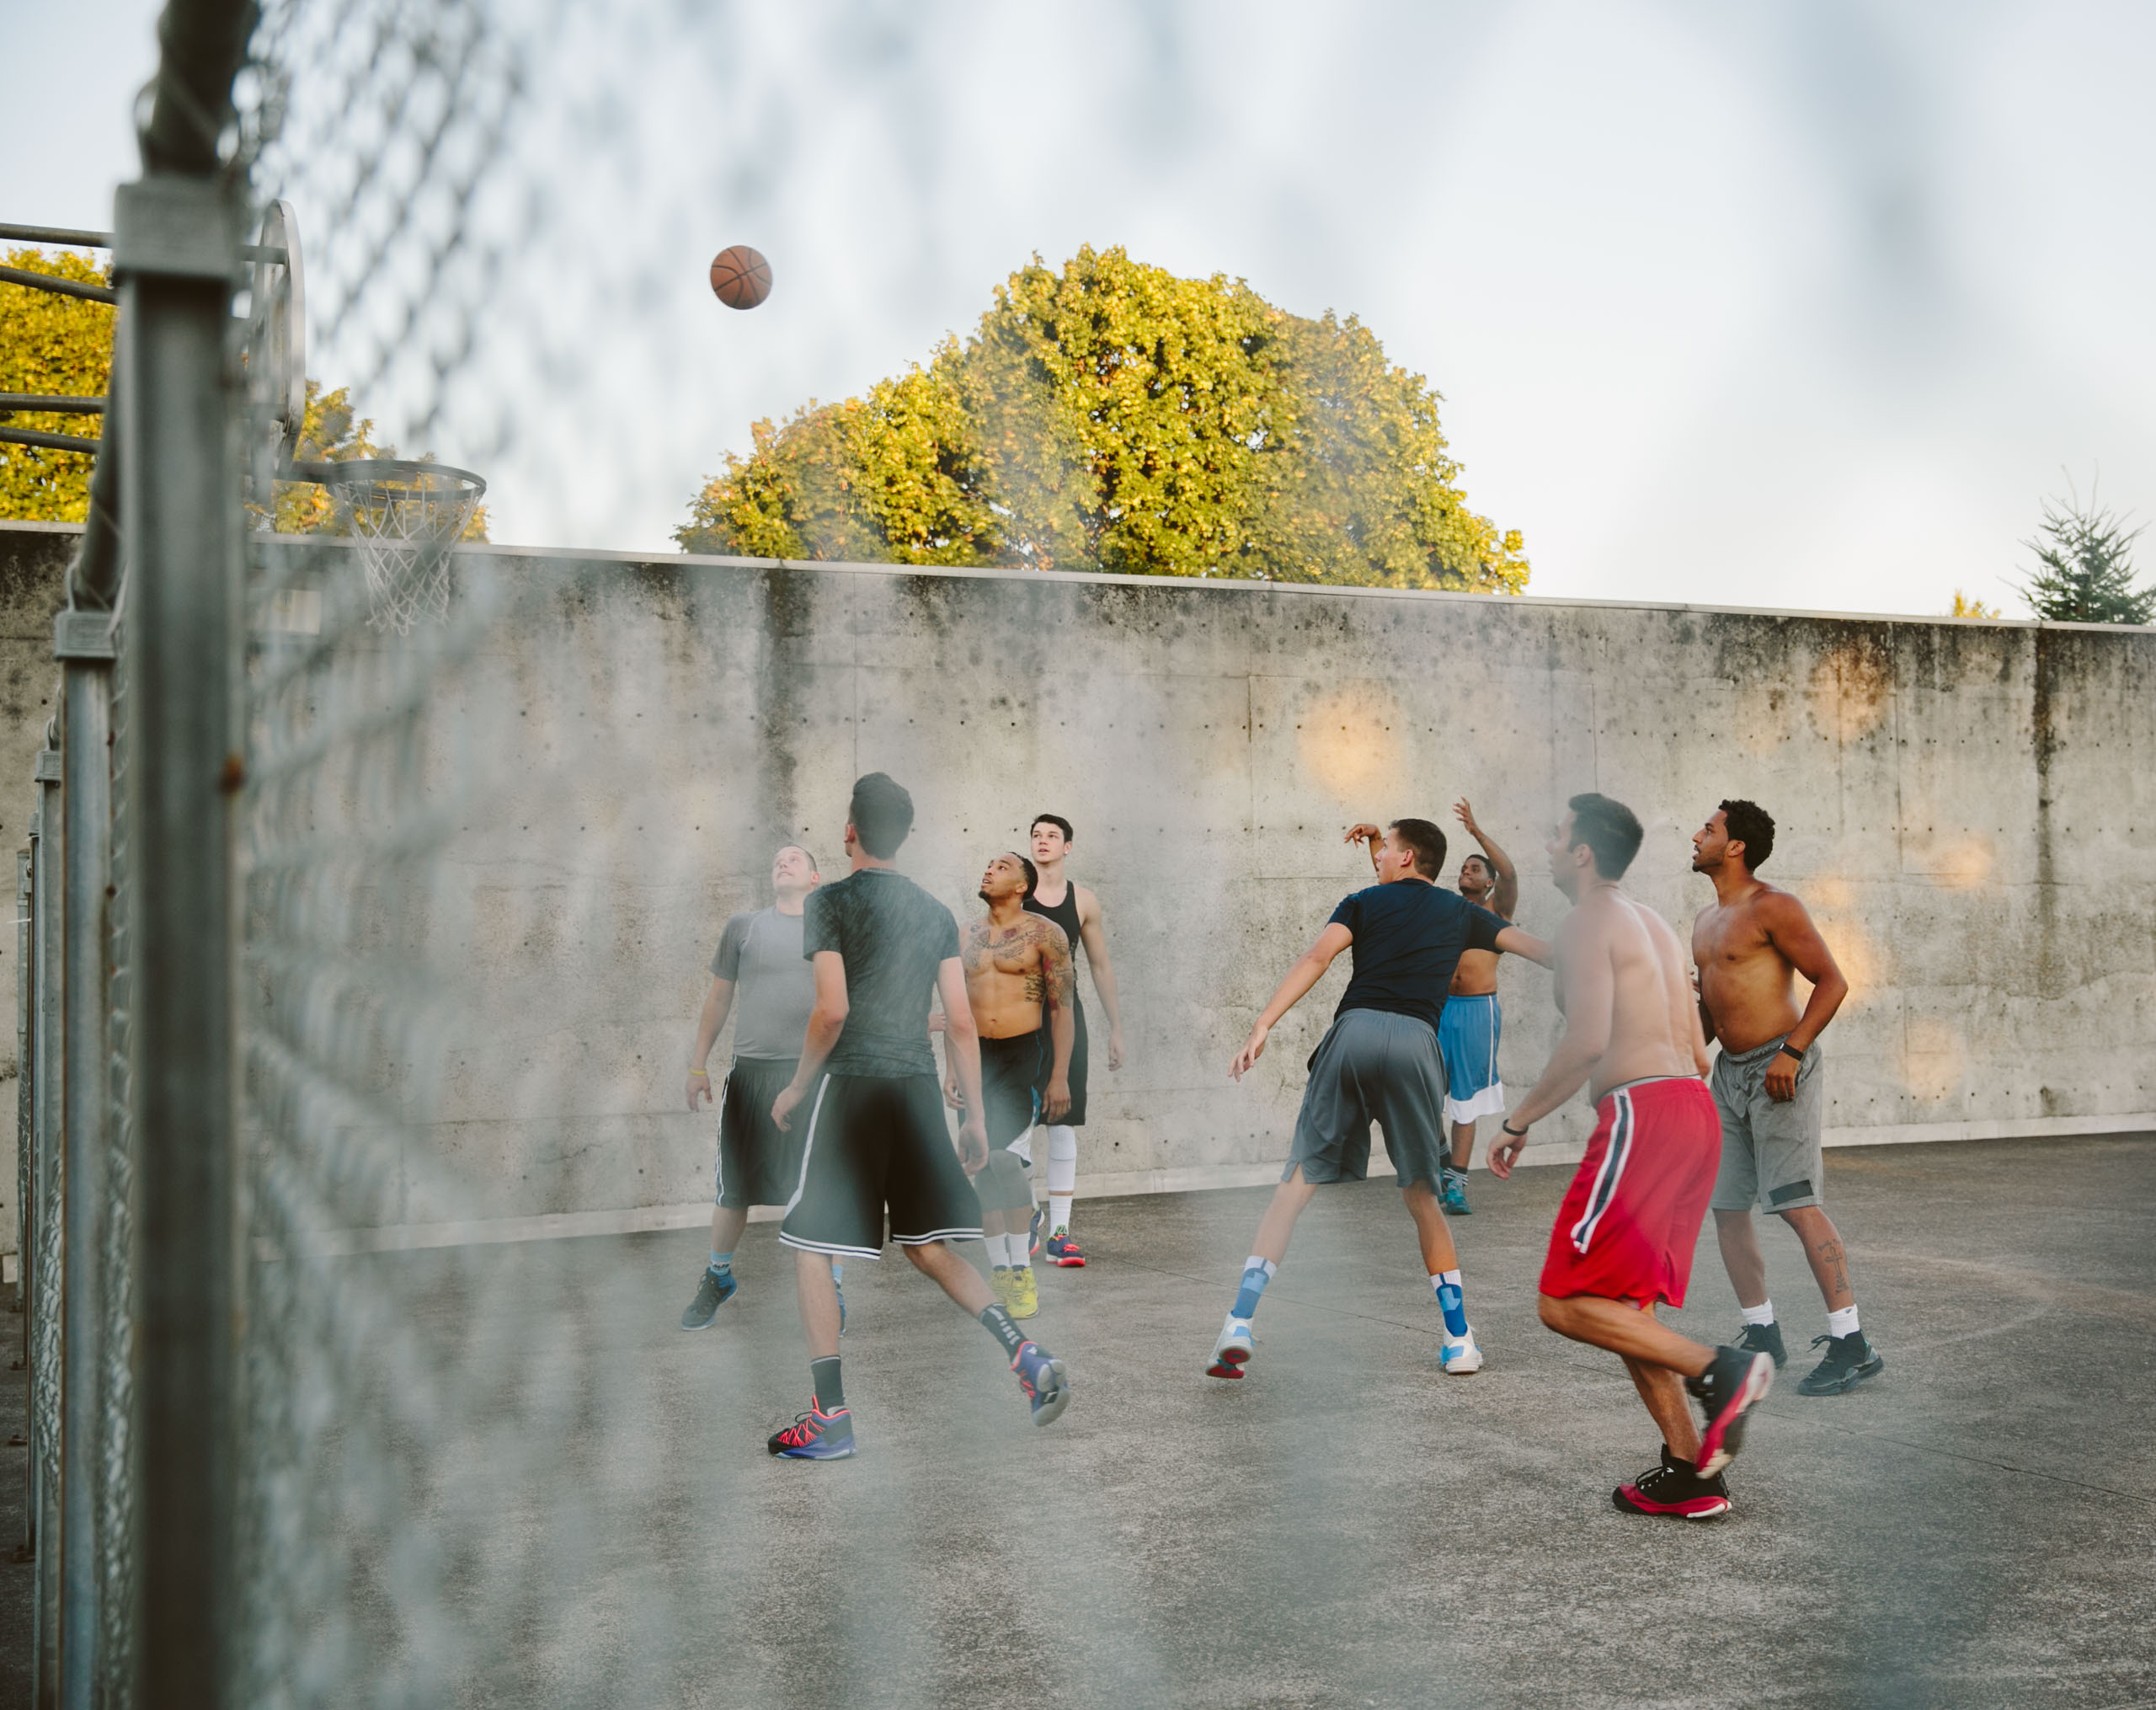 A game of street ball